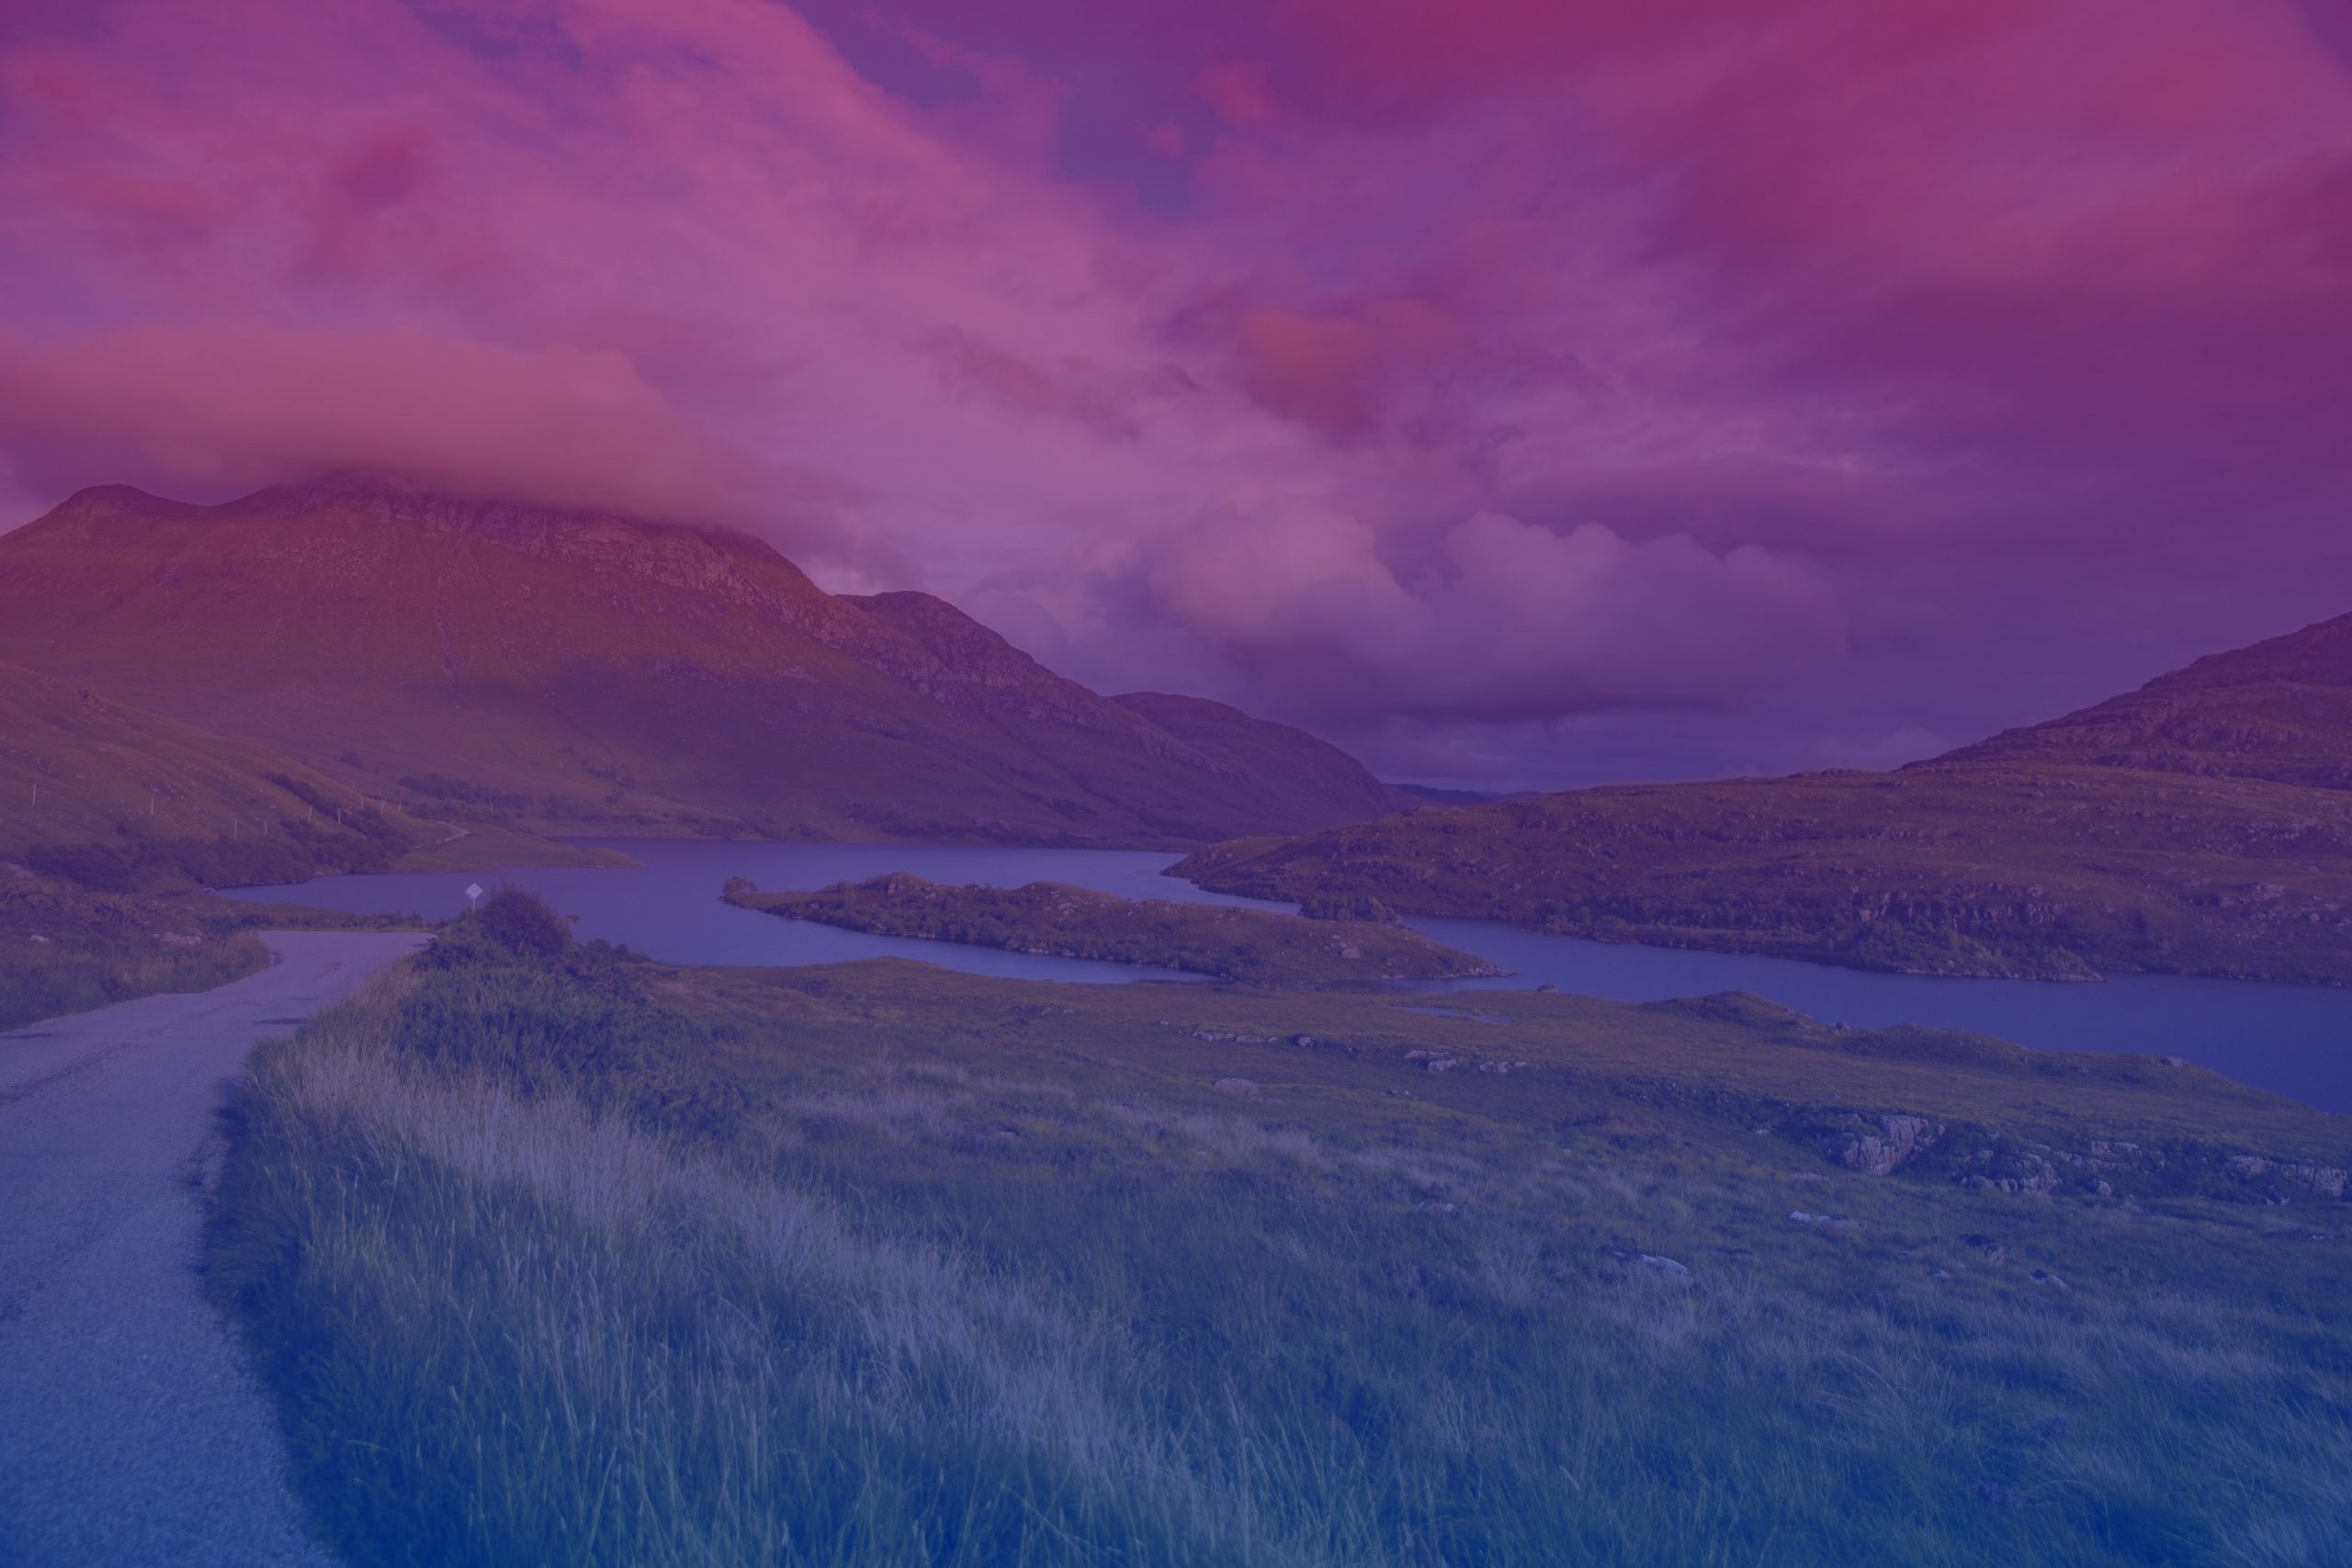 A picture of Scottish hills on a cloudy day with the bi flag colours over them